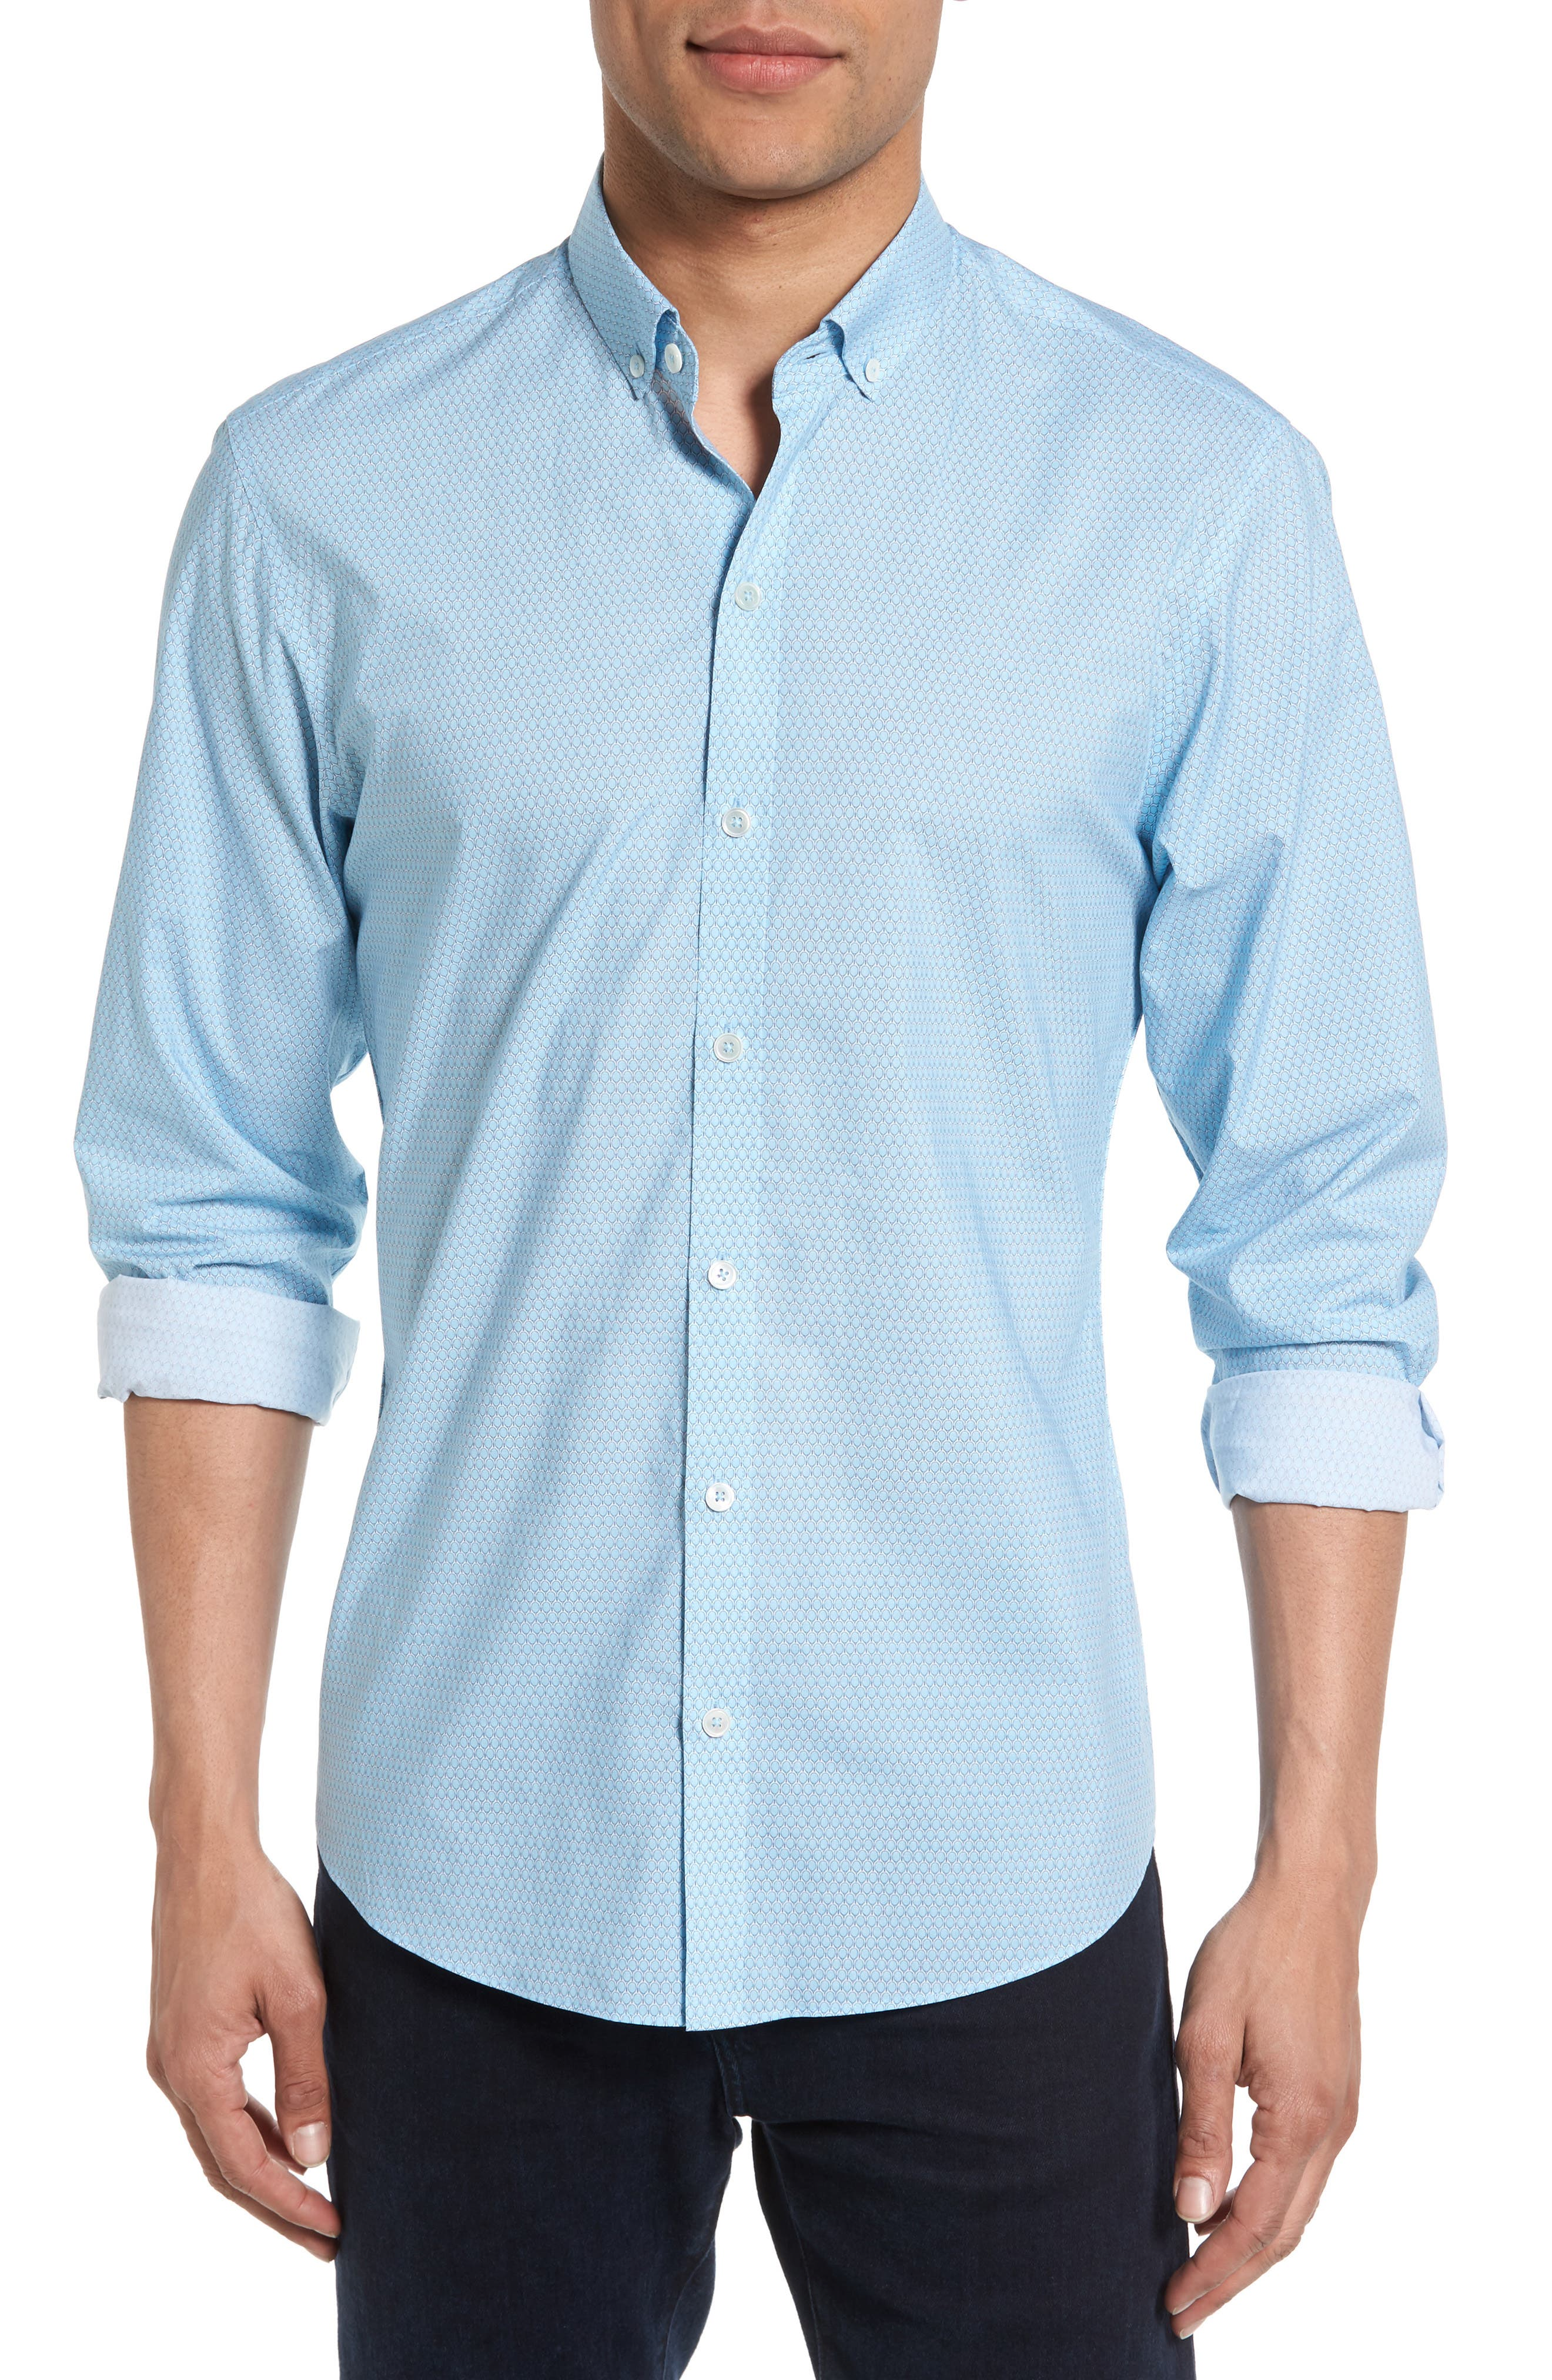 Dakotah Regular Fit Print Sport Shirt, Main, color, 439